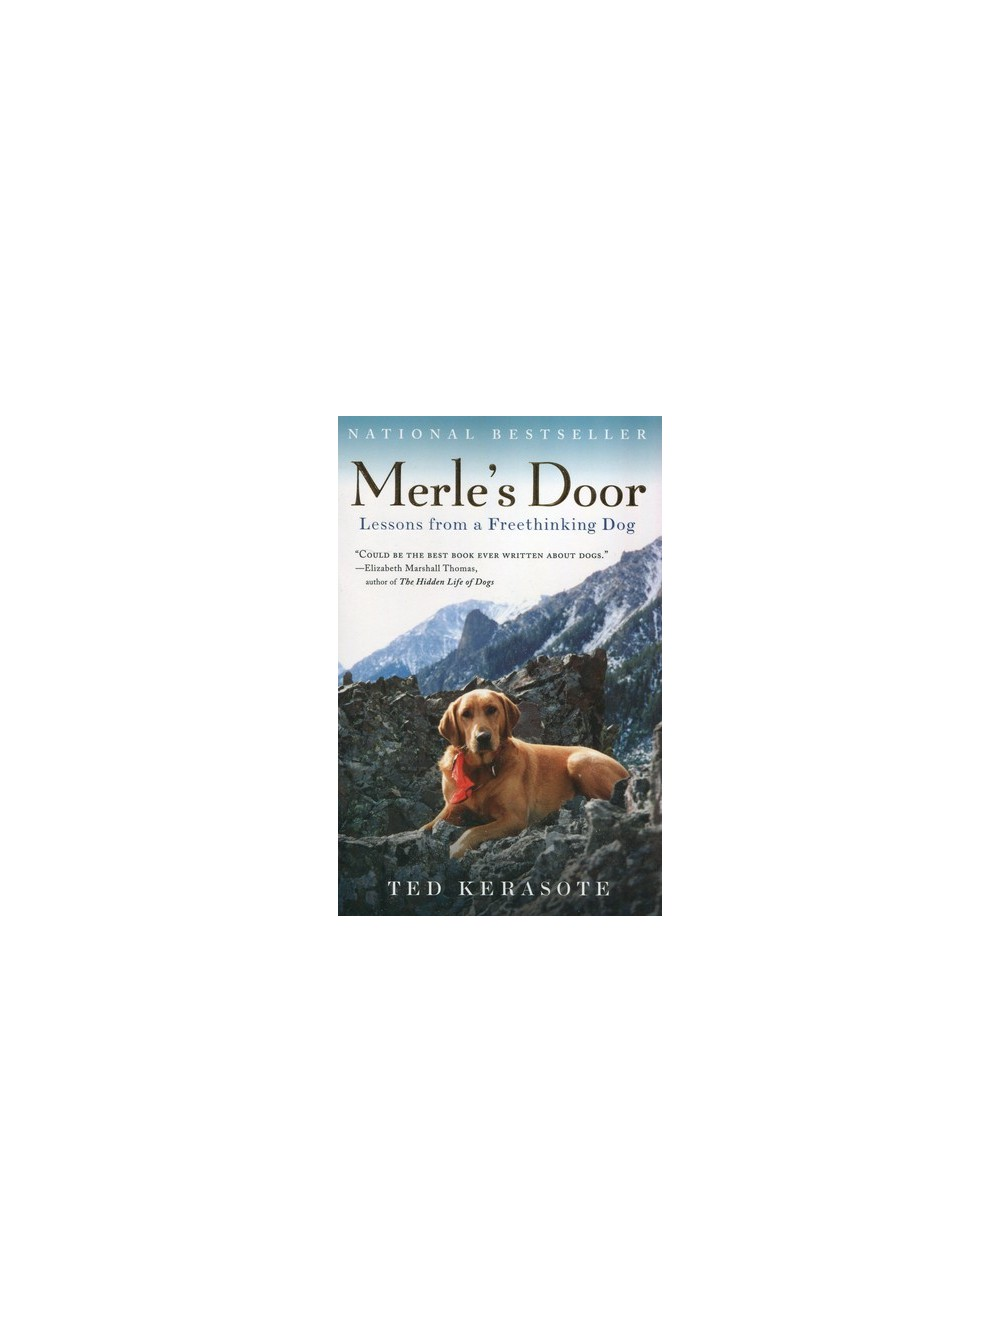 the hidden life of dogs book The hidden life of dogs: book review the hidden life of dogs was written by elizabeth thomas who is currently well know and highly re-spec ted for her books elizabeth thomas was born in america and currently lives in new hampshire.